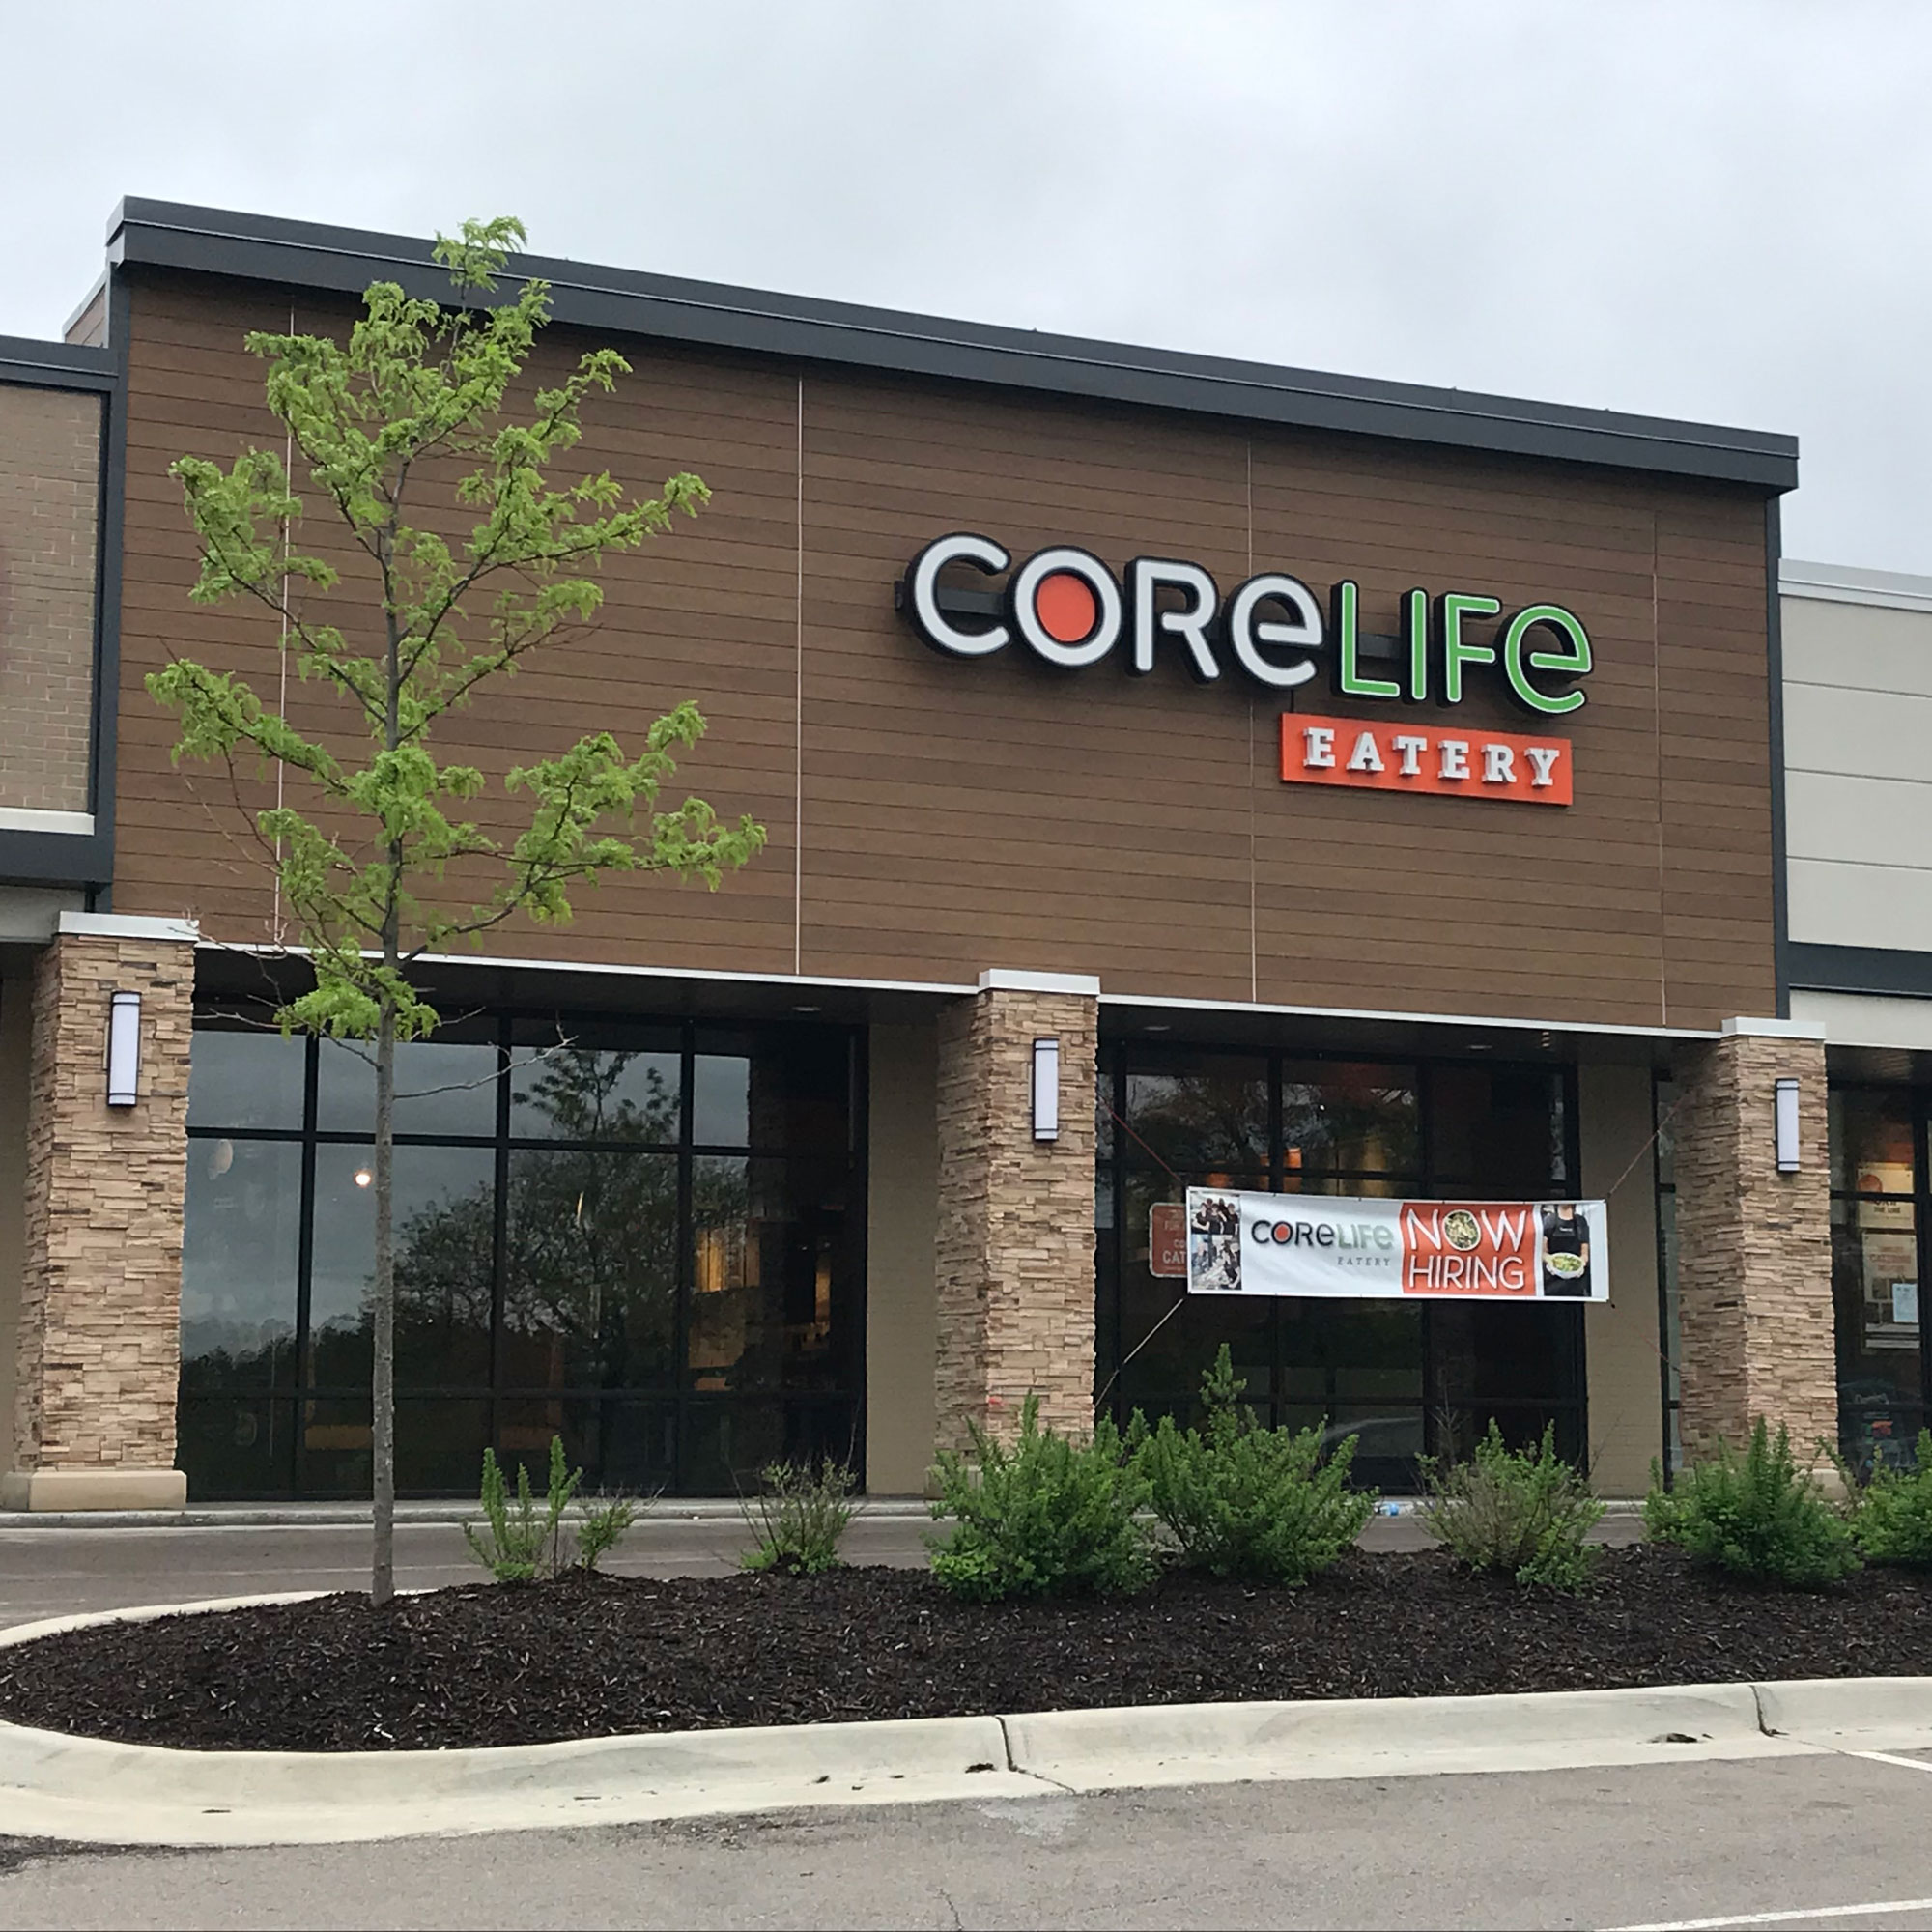 Corelife Eatery Healthy Restaurant In Ann Arbor Mi With